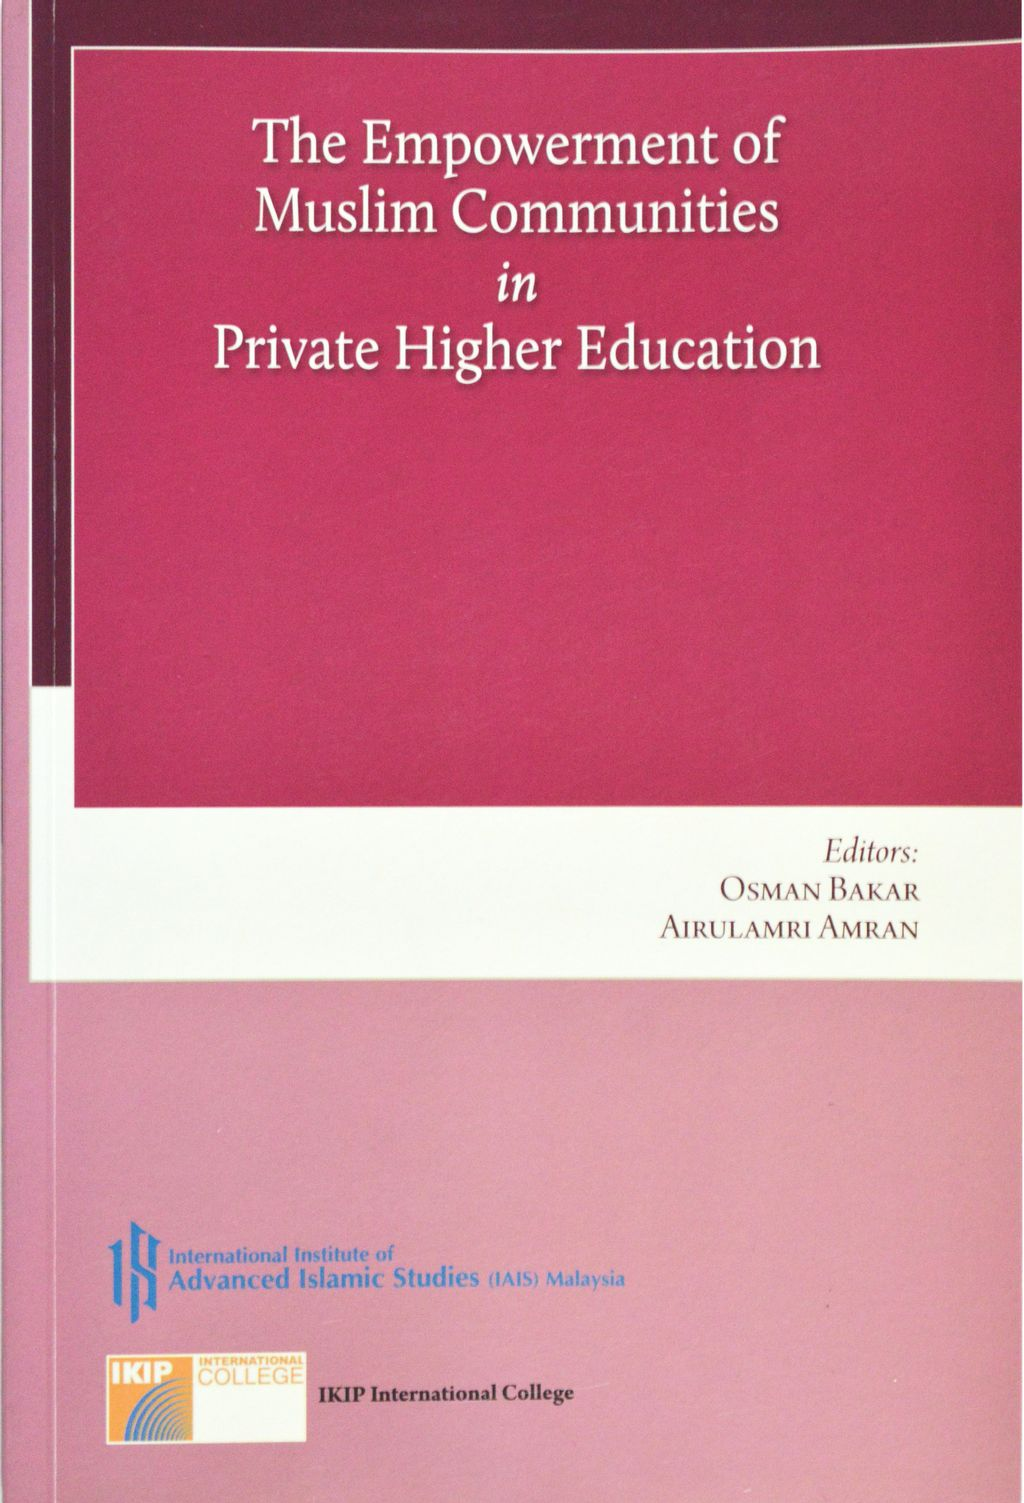 The Empowernment of Muslim Communities in Private Higher Education.jpg